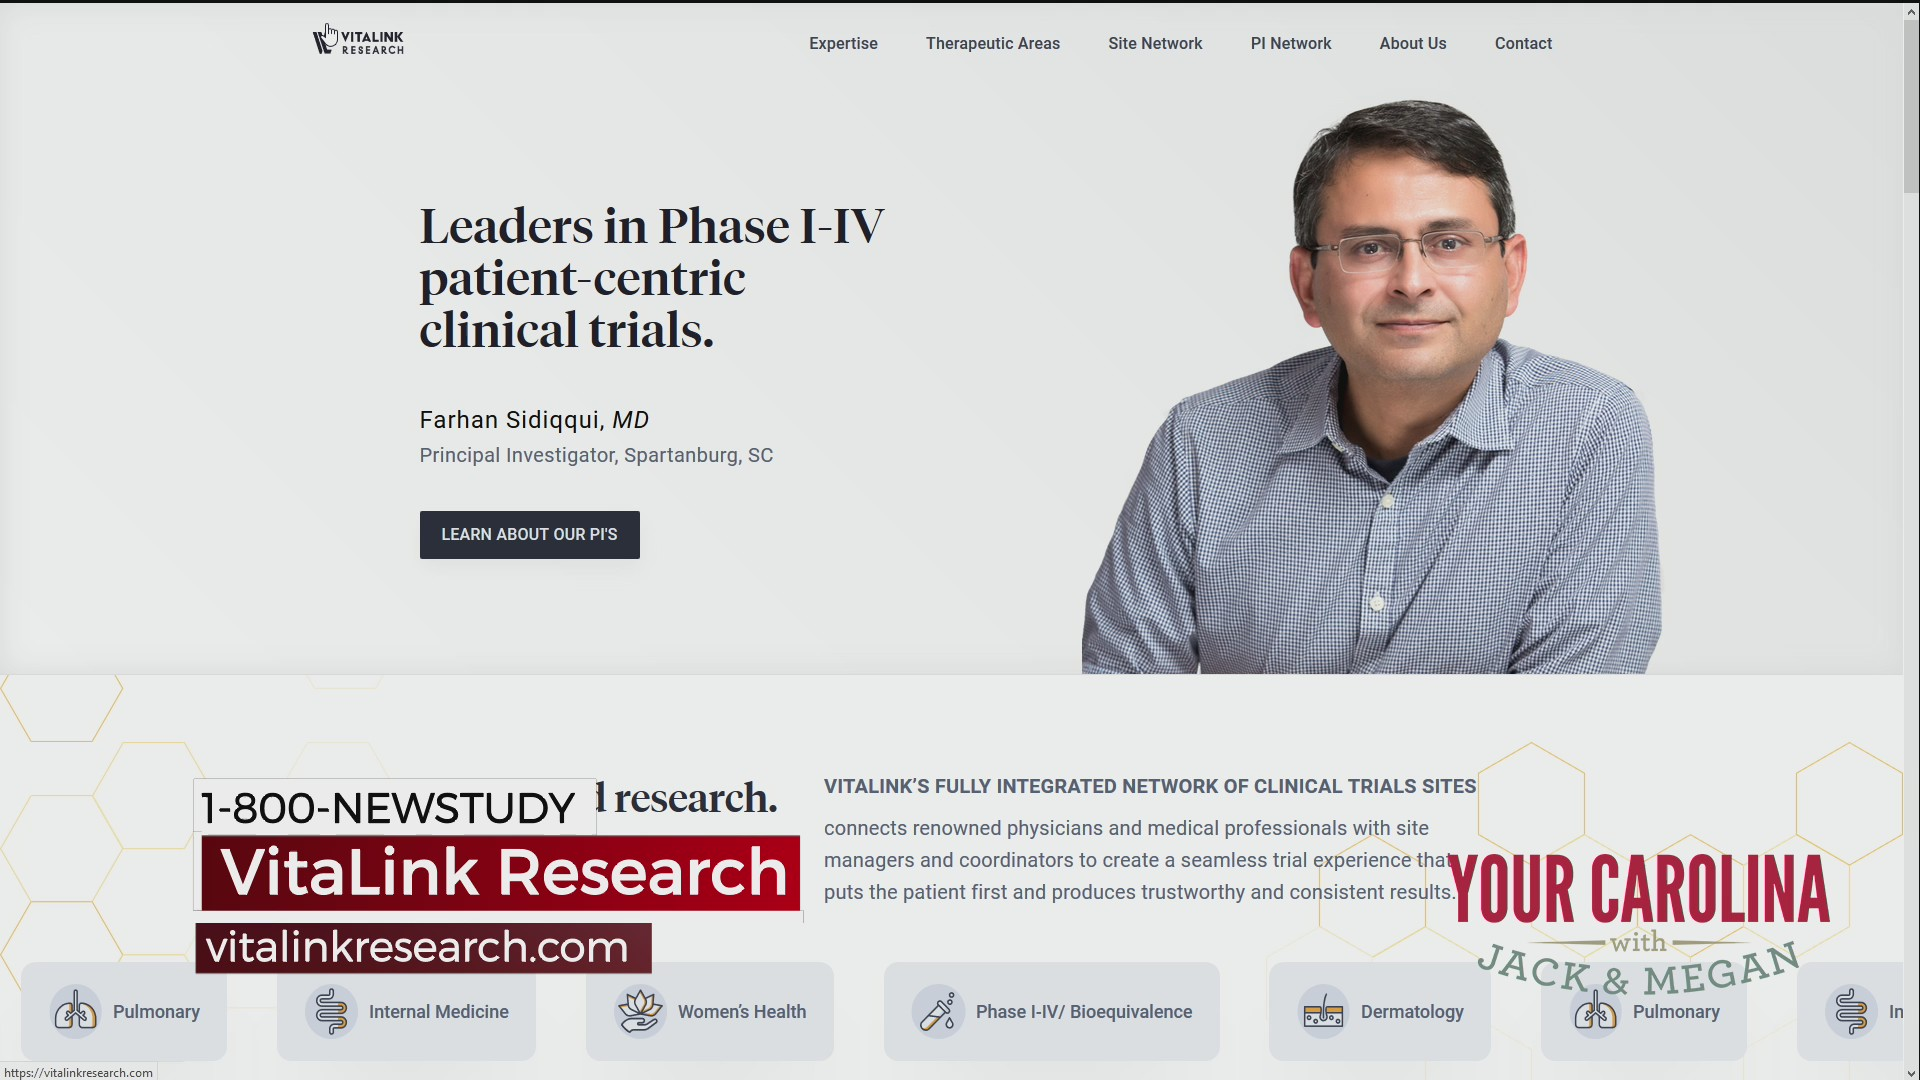 Vitalink Research